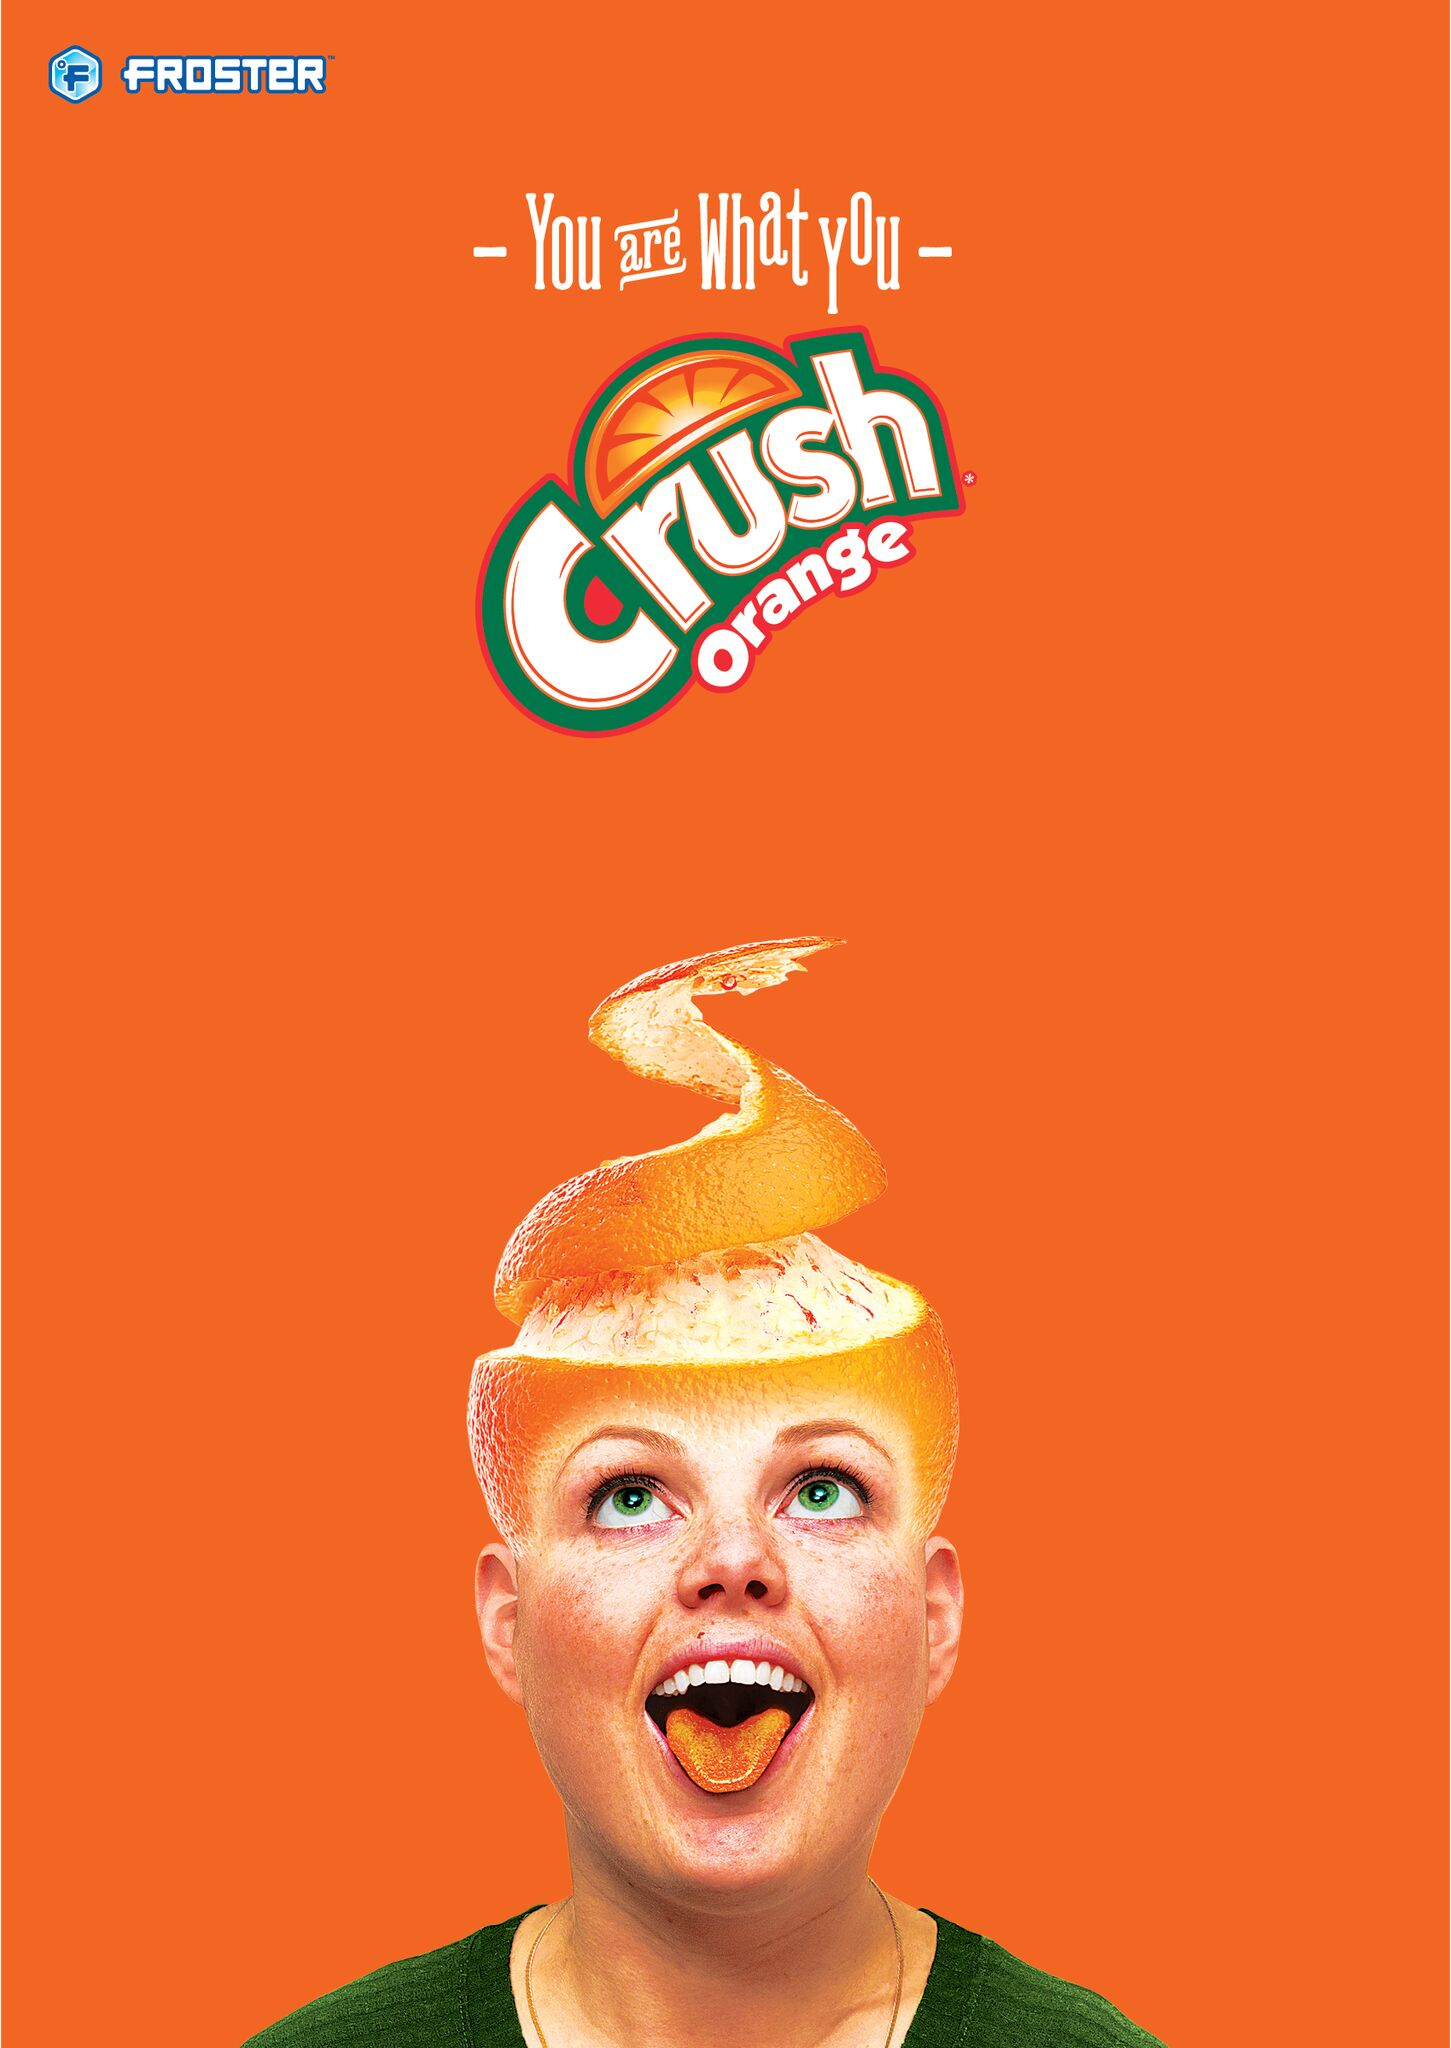 Mac's Froster - Crush orange poster